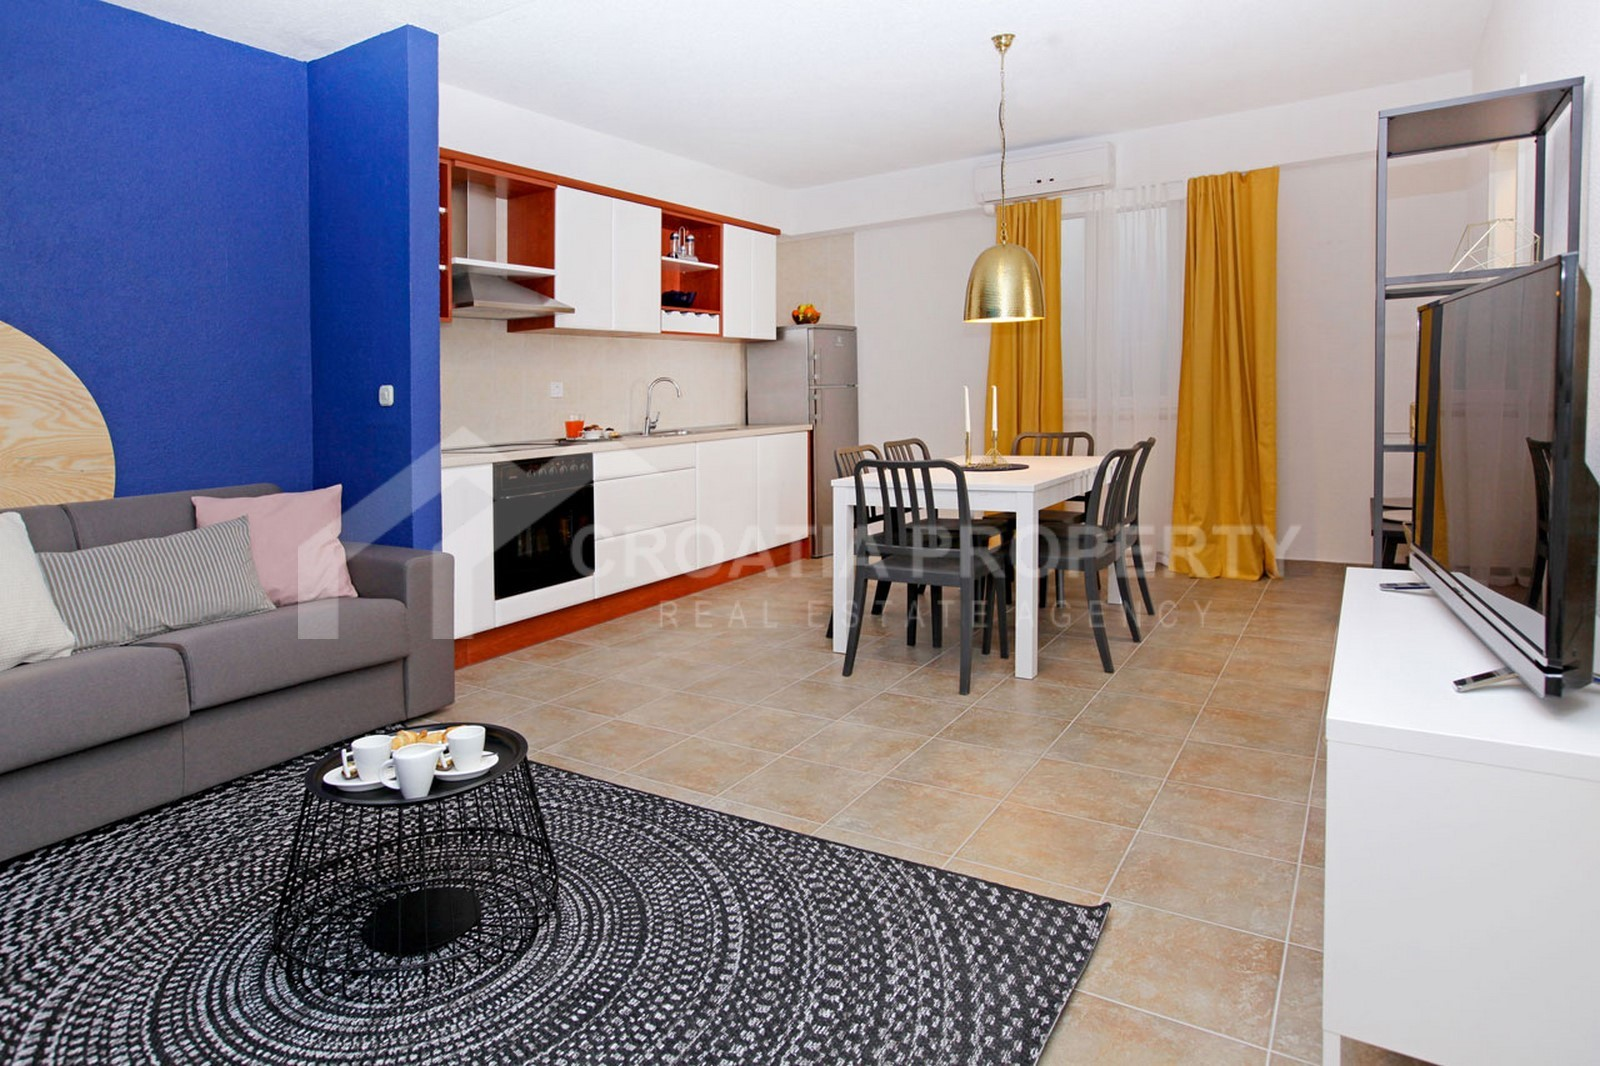 Beautiful apartment in Bol for sale